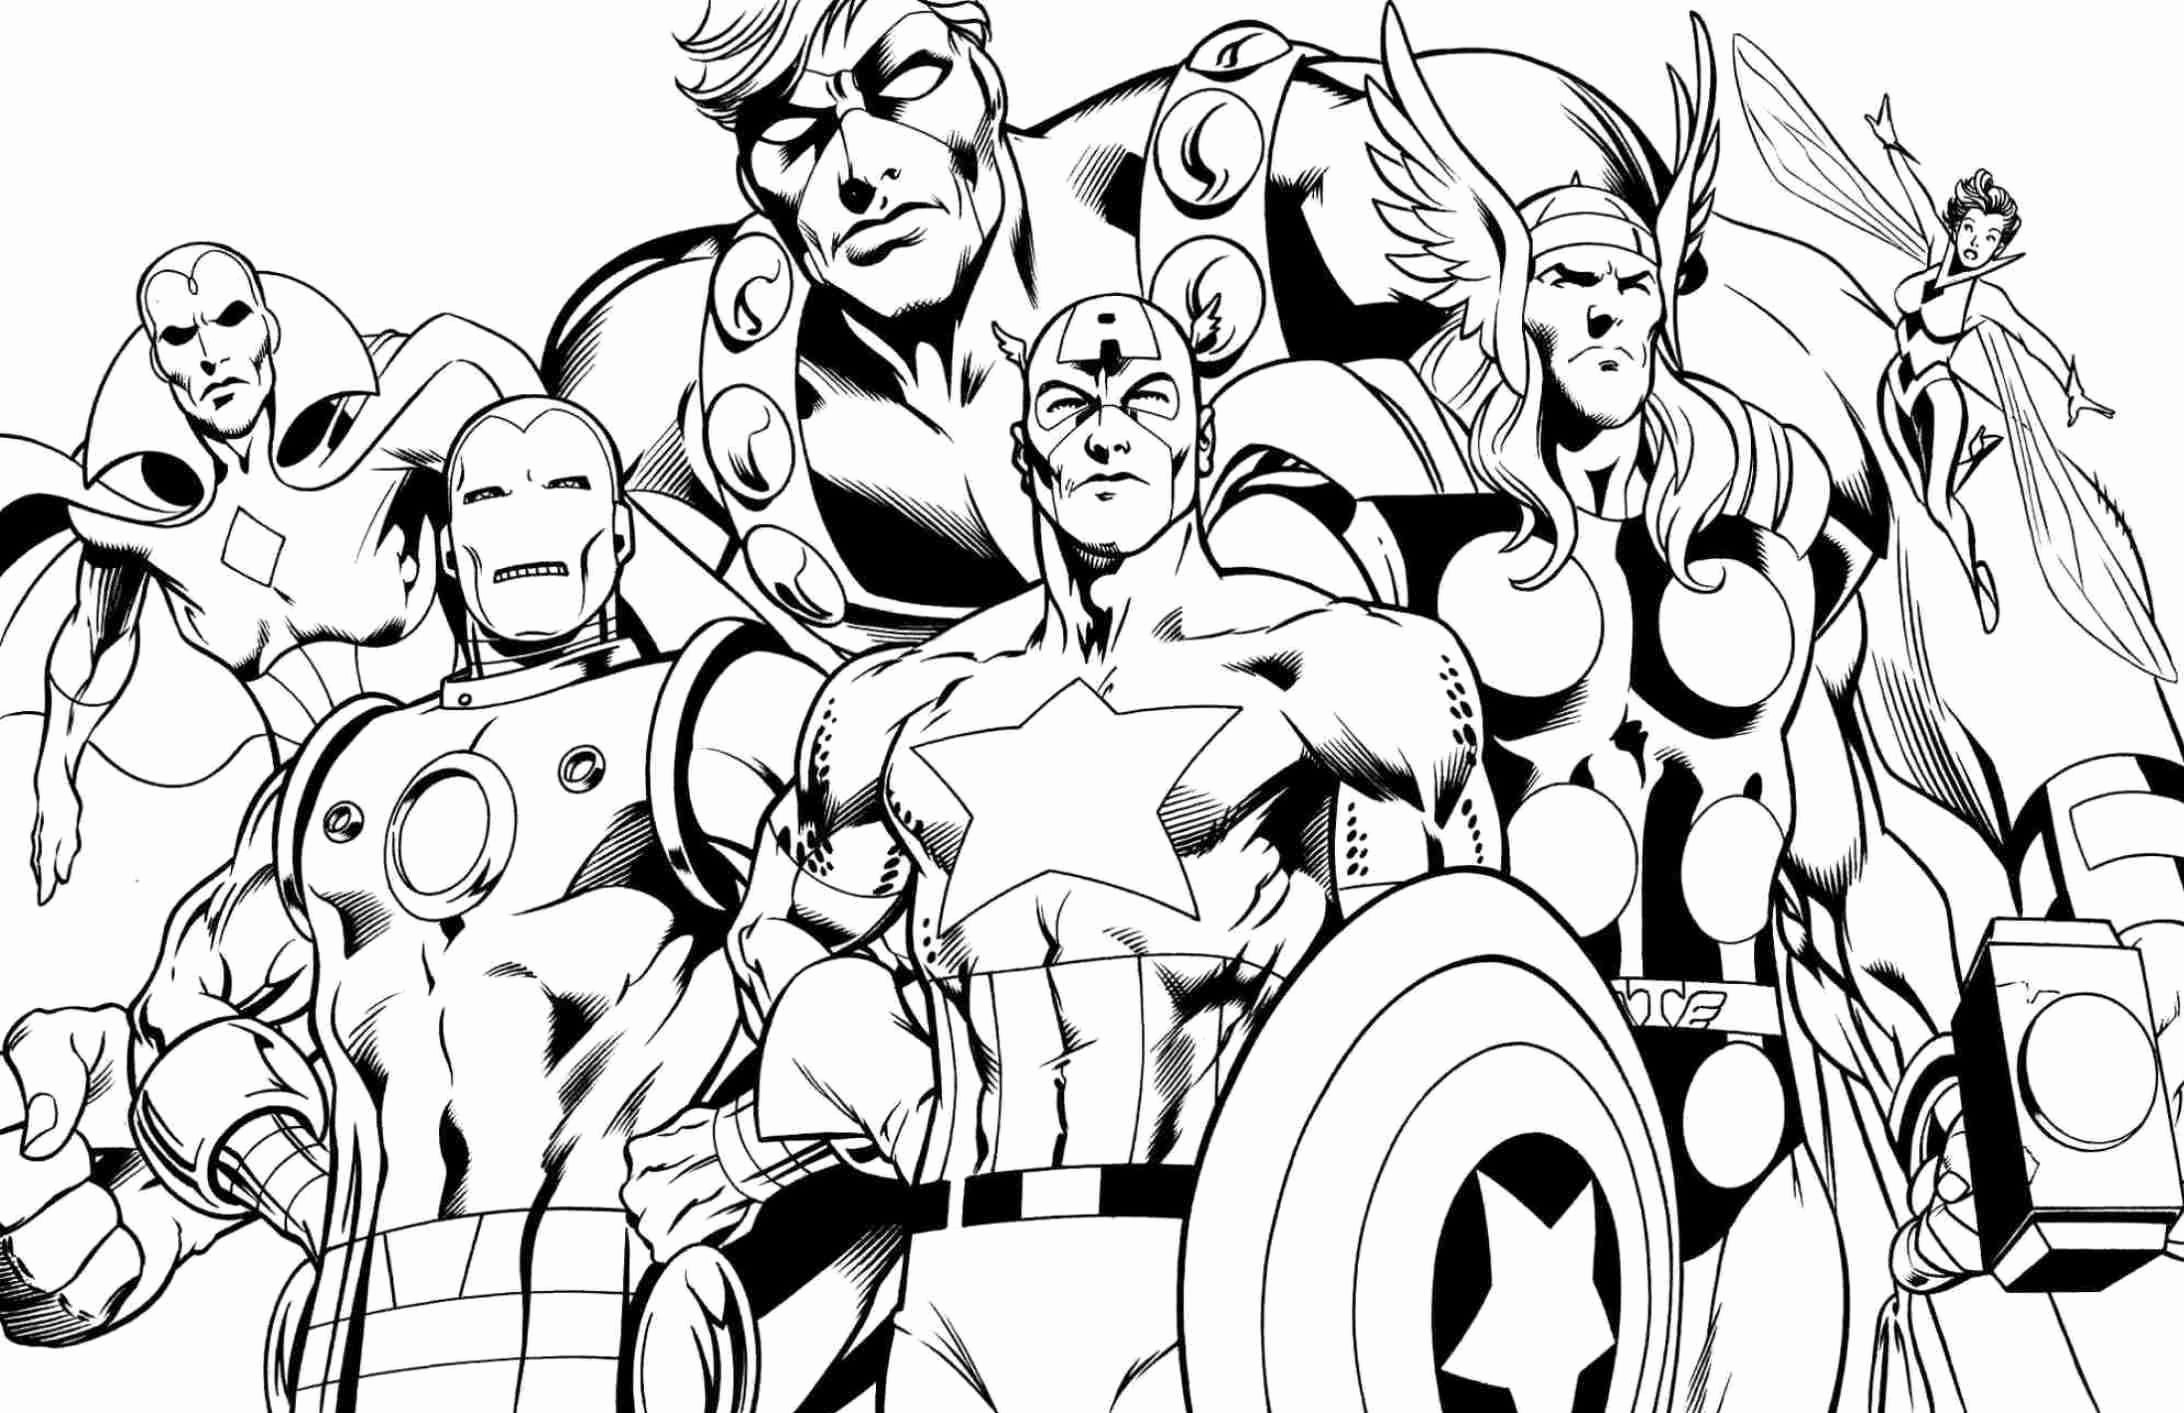 Super Hero Coloring Page Fresh Superhero Coloring Pages Best Coloring Pages for Kids